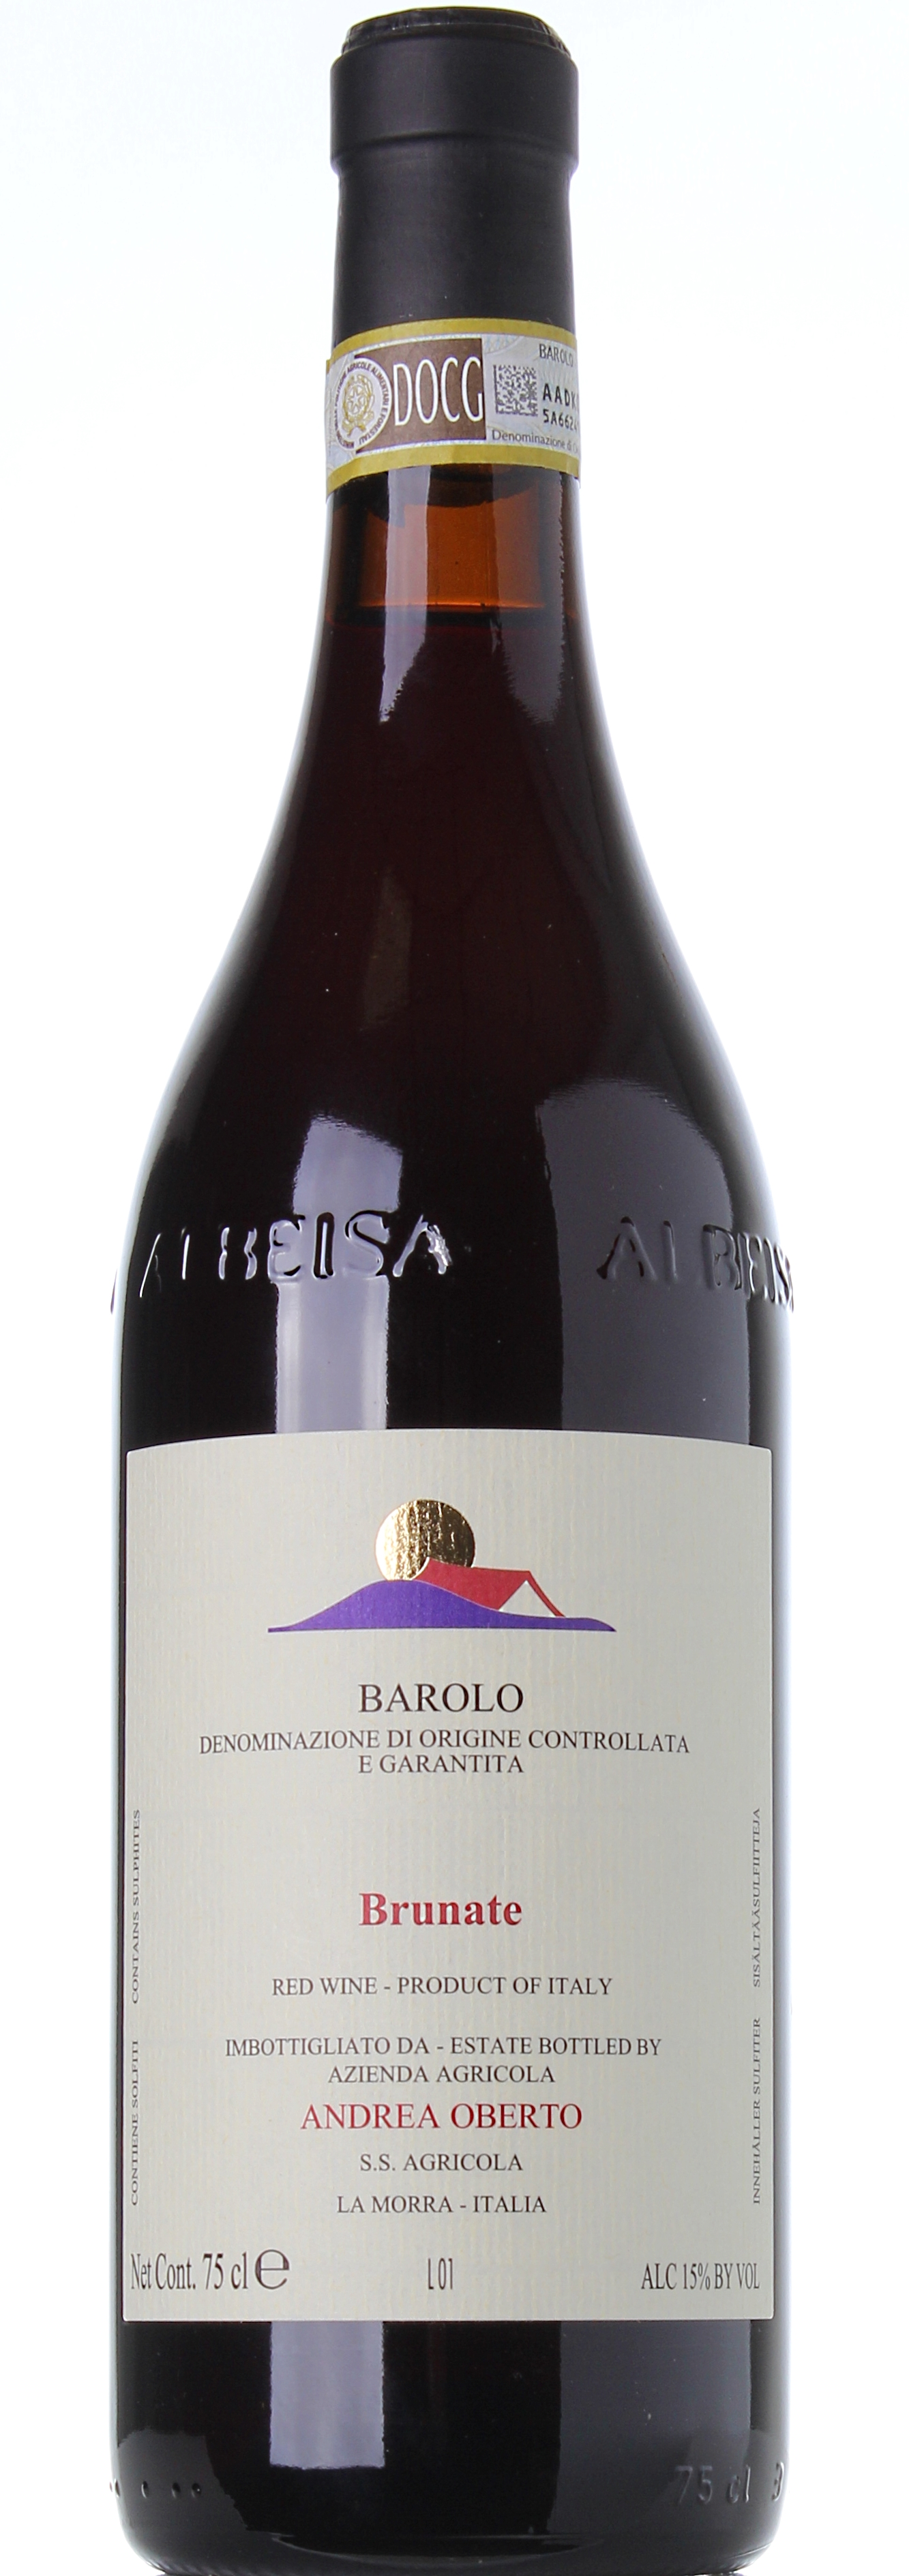 OBERTO BAROLO BRUNATE 2011